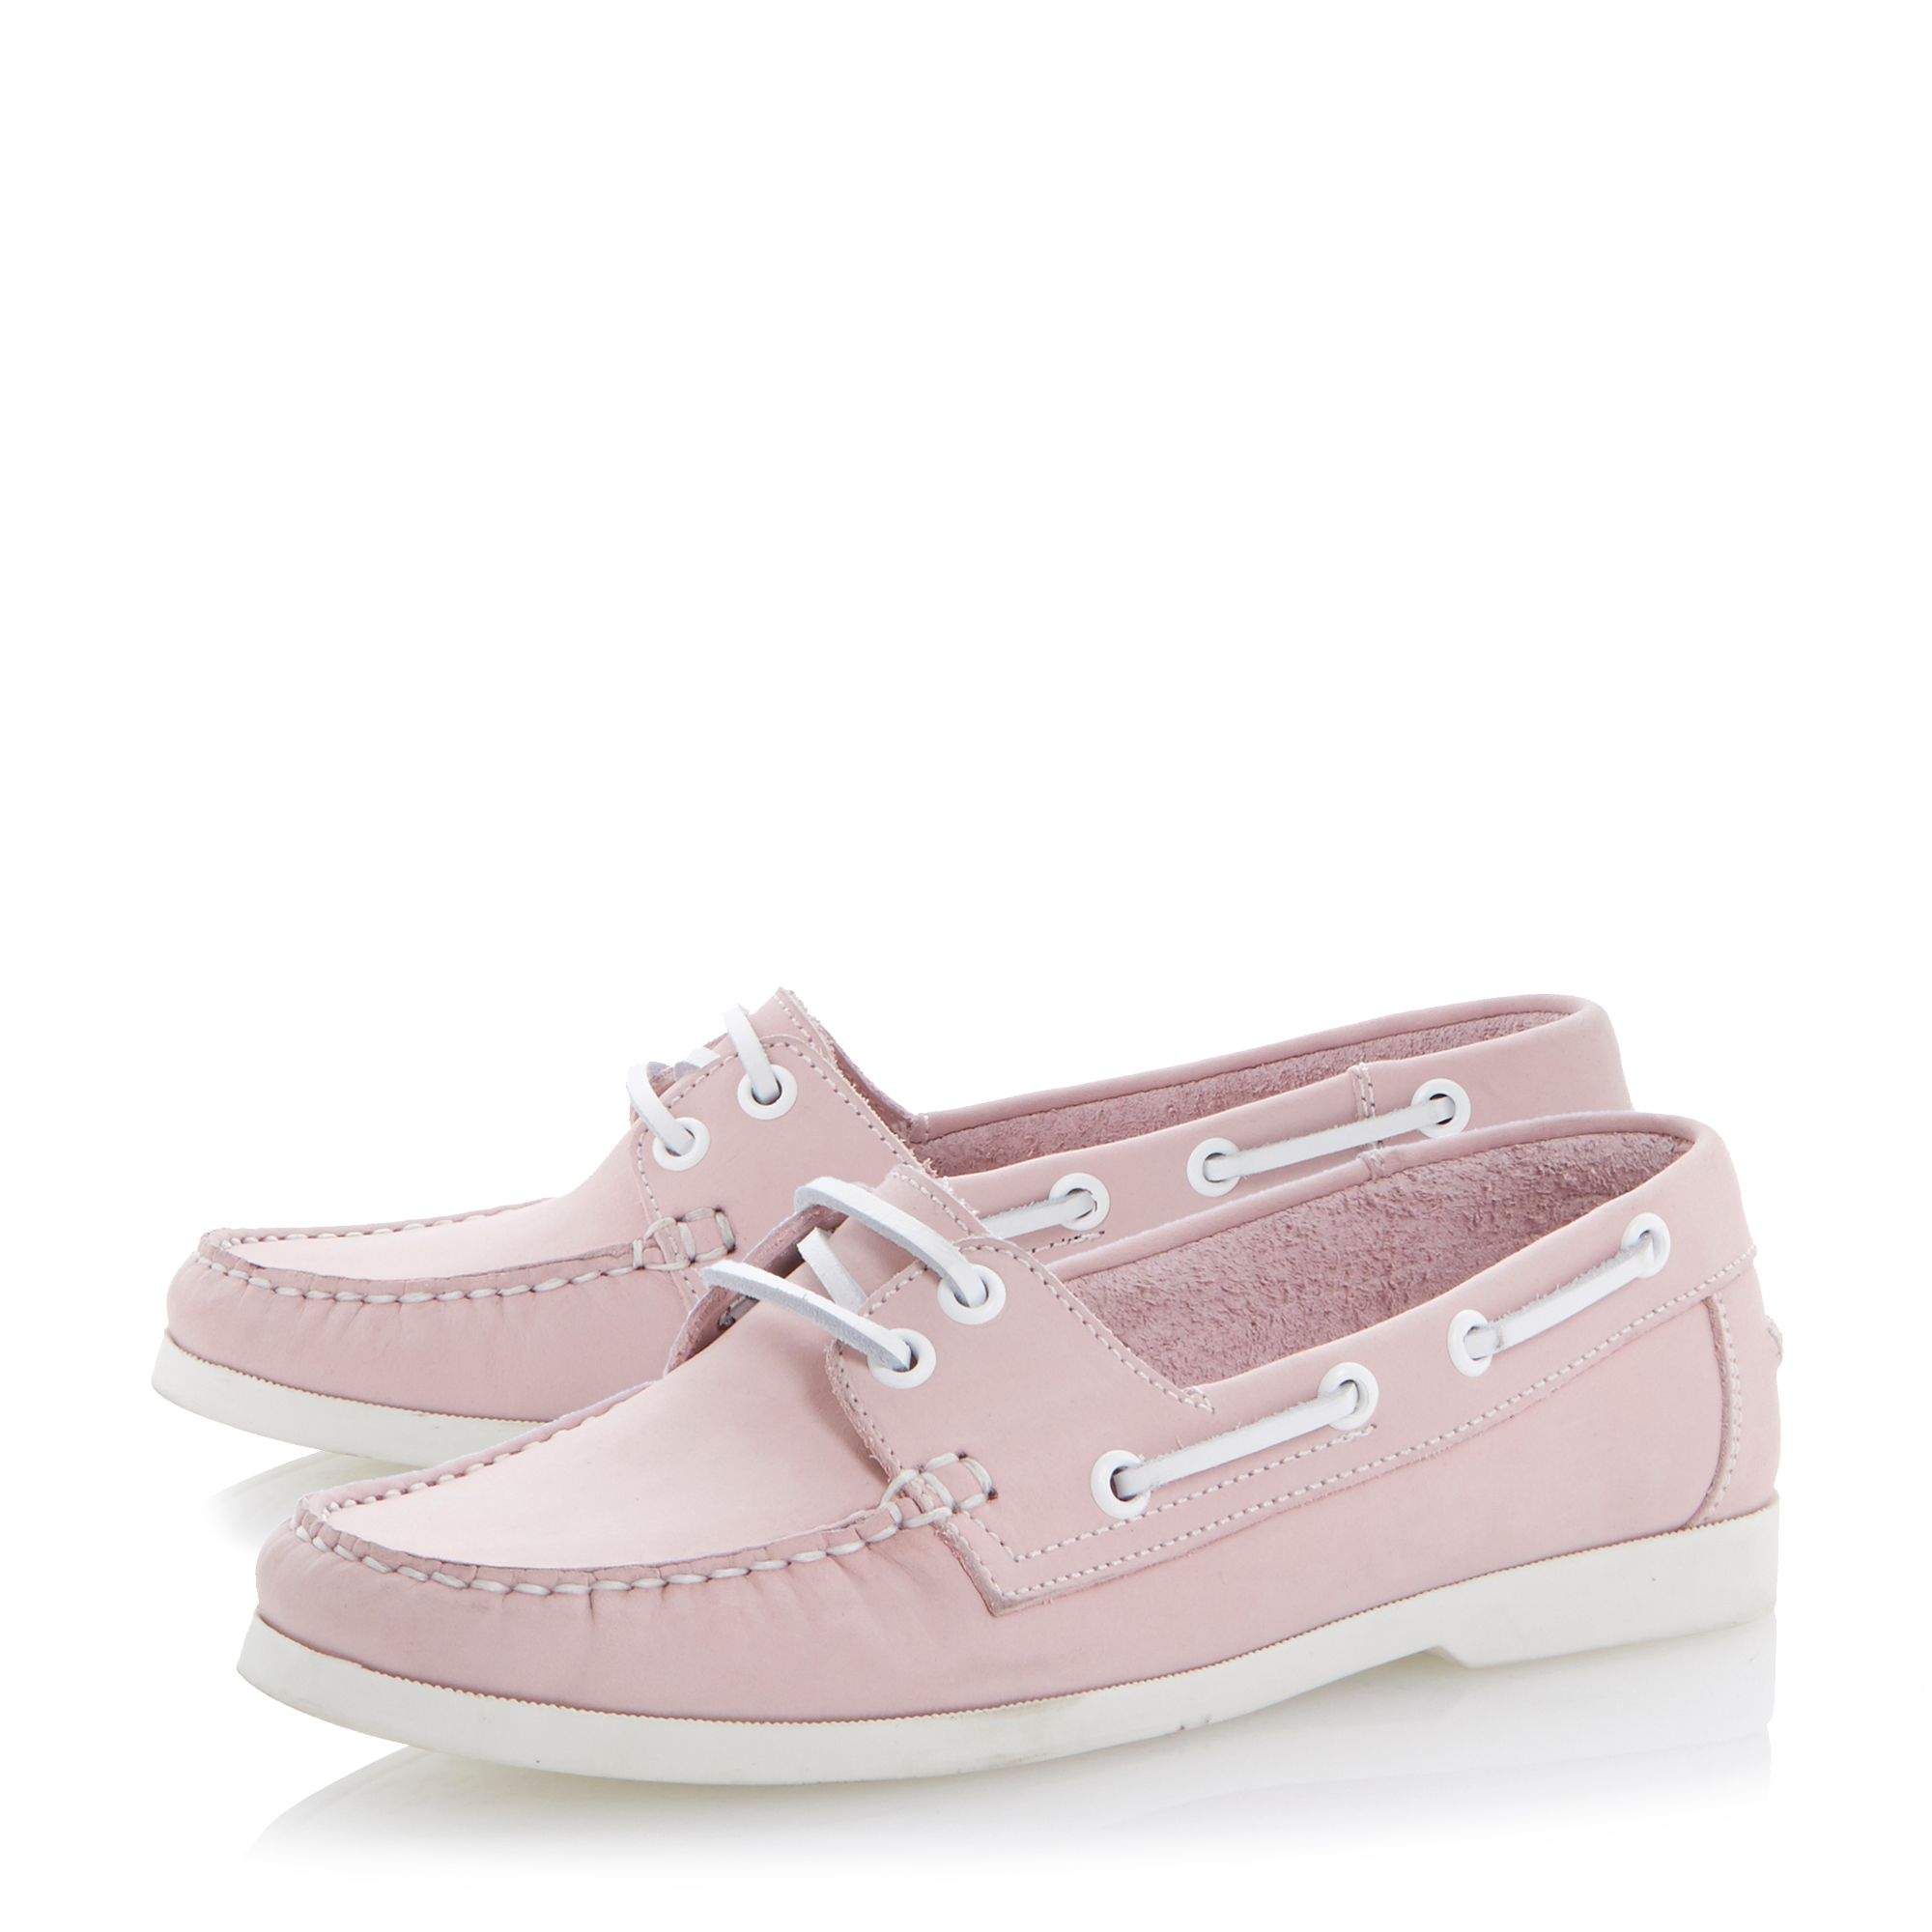 Linken leather peeptoe wedge laced boat shoes